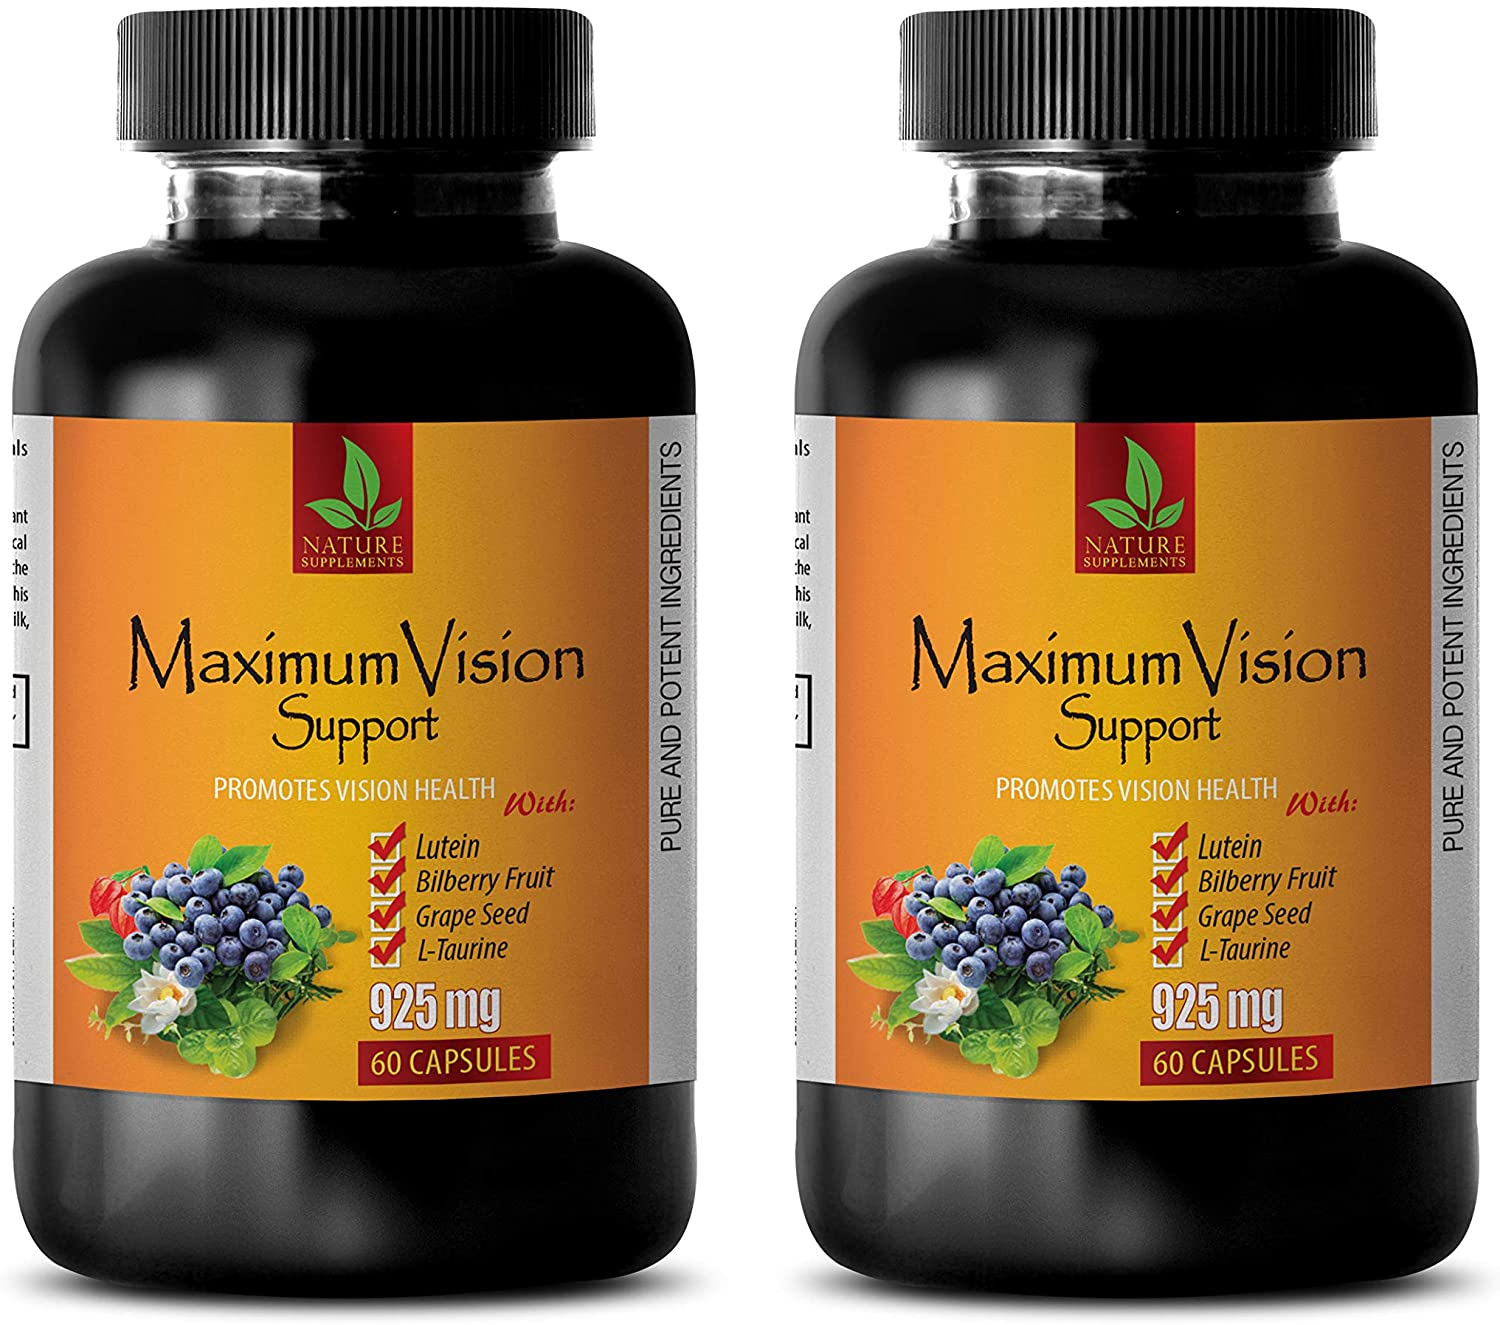 Vision Eye Supplements - Maximum Vision Support - Promotes Vision Health - Bilberry Pills for Eyes - 2 Bottle 120 Capsules